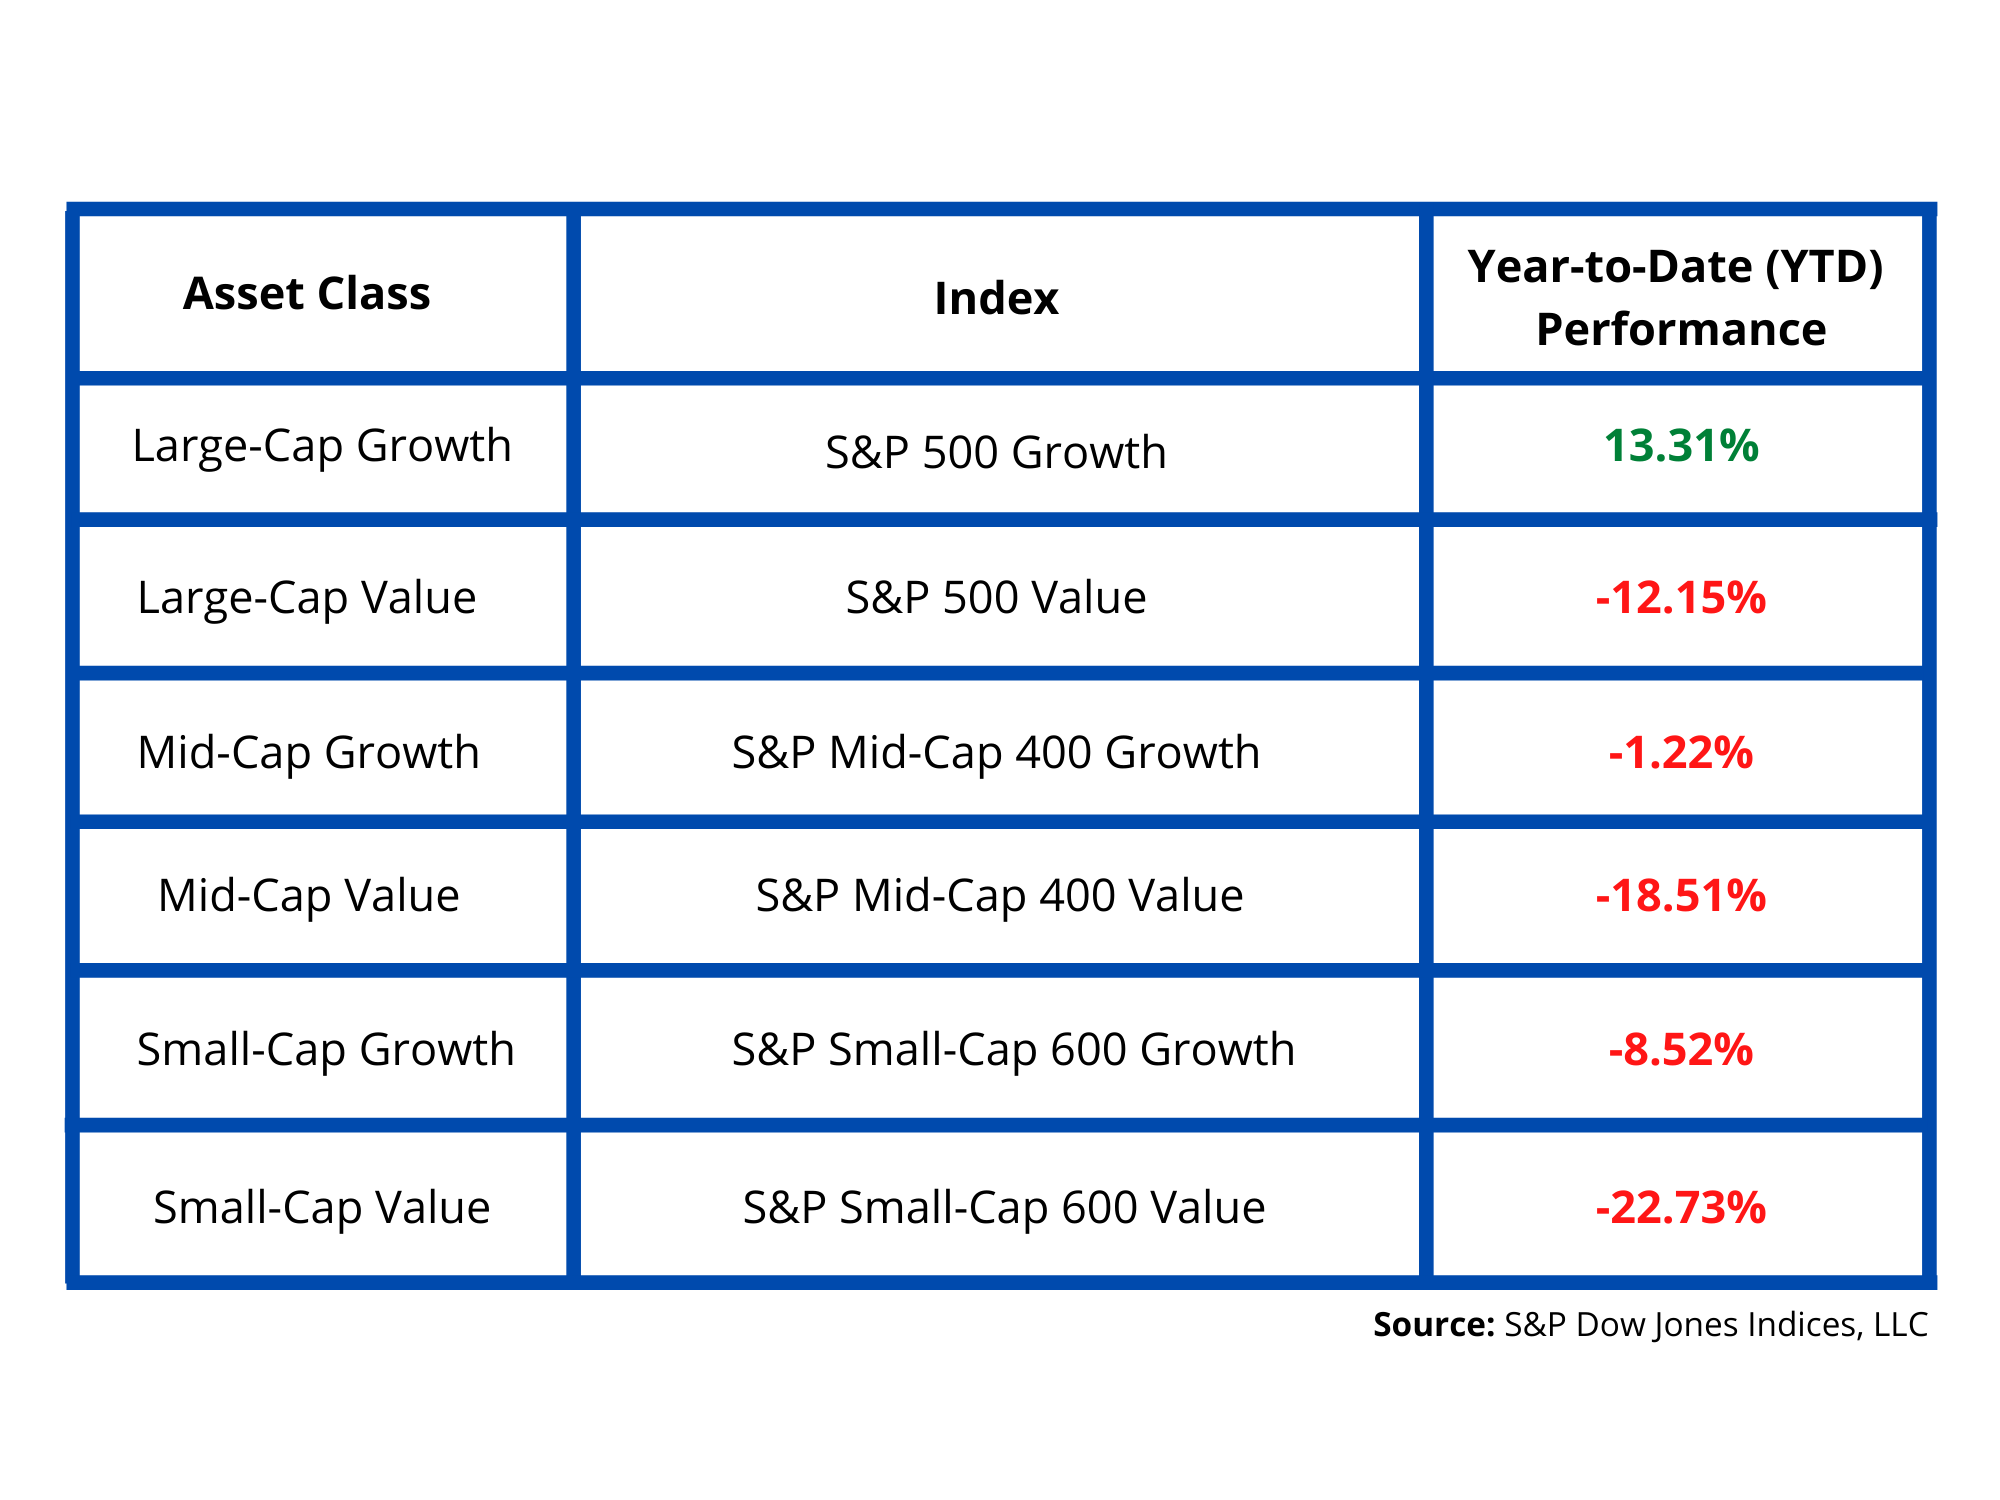 Sector performance by growth_value - UPDATED, 7-22-2020